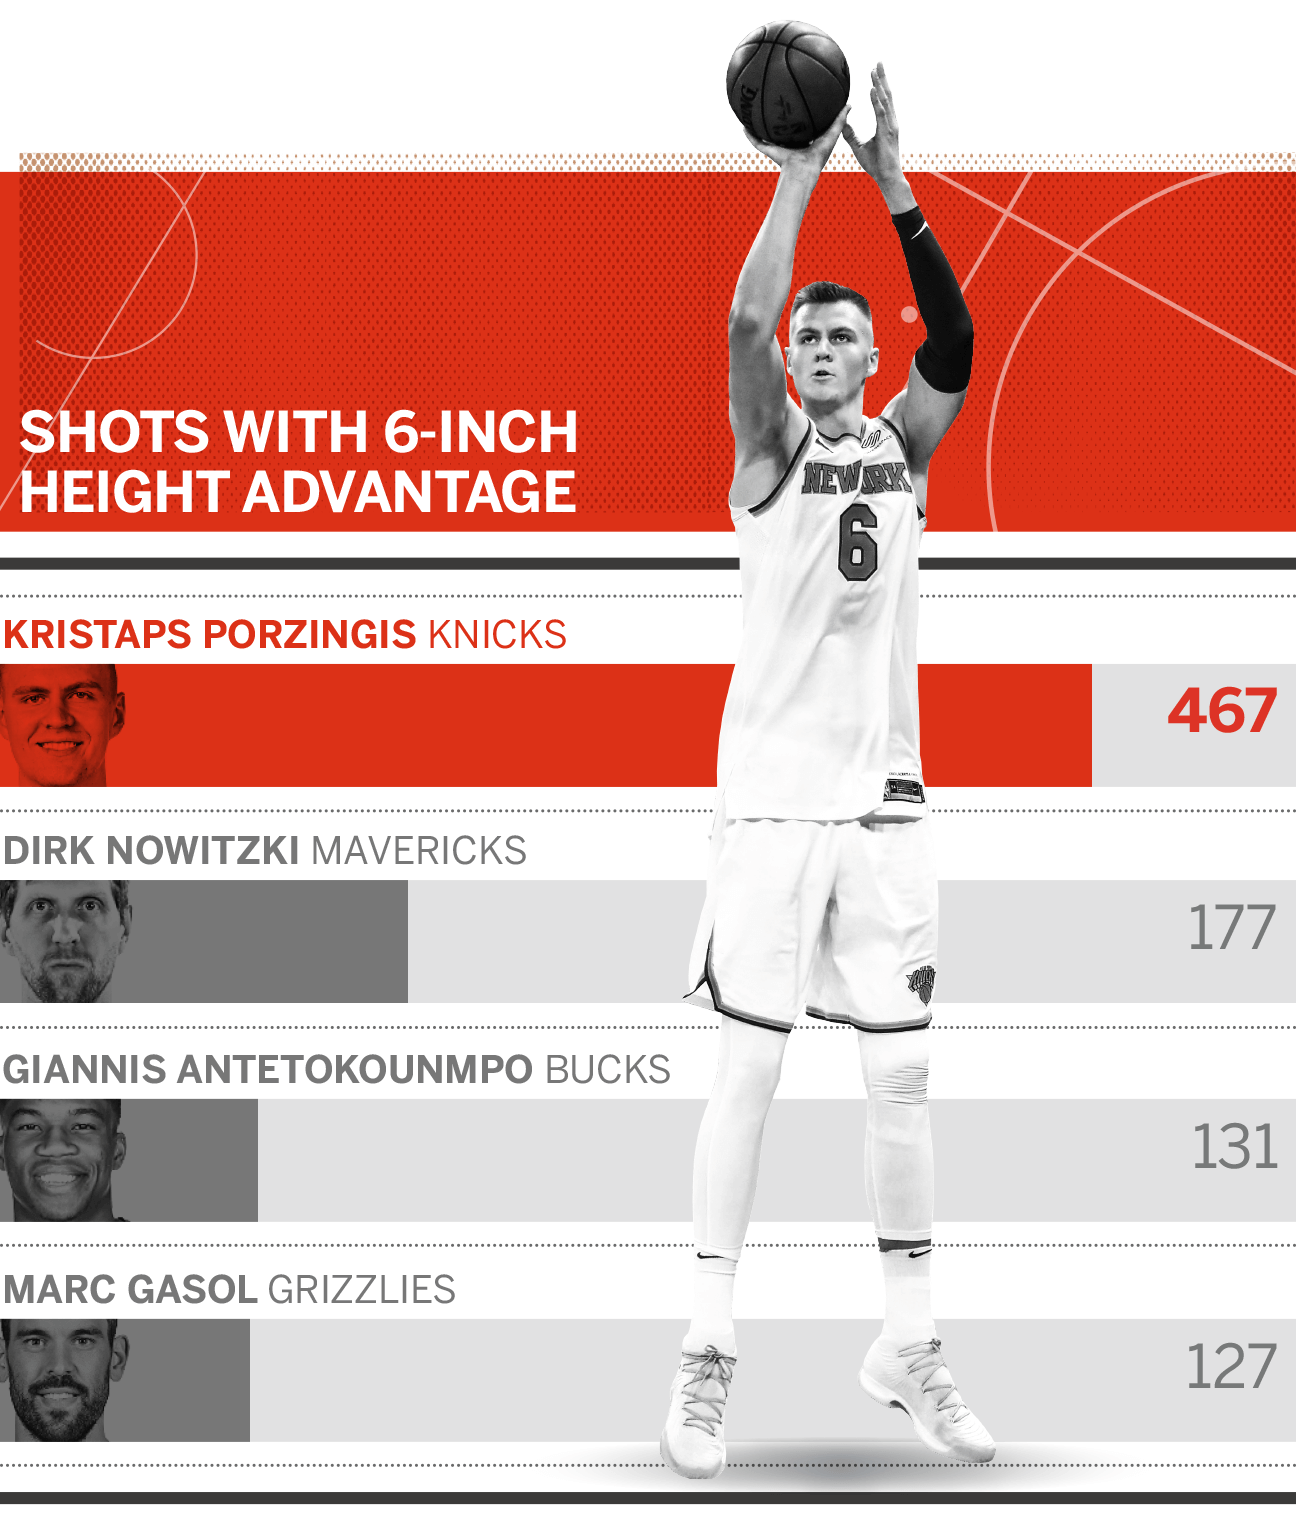 Kristaps Porzingis Uses His Height Unlike Any Other Player